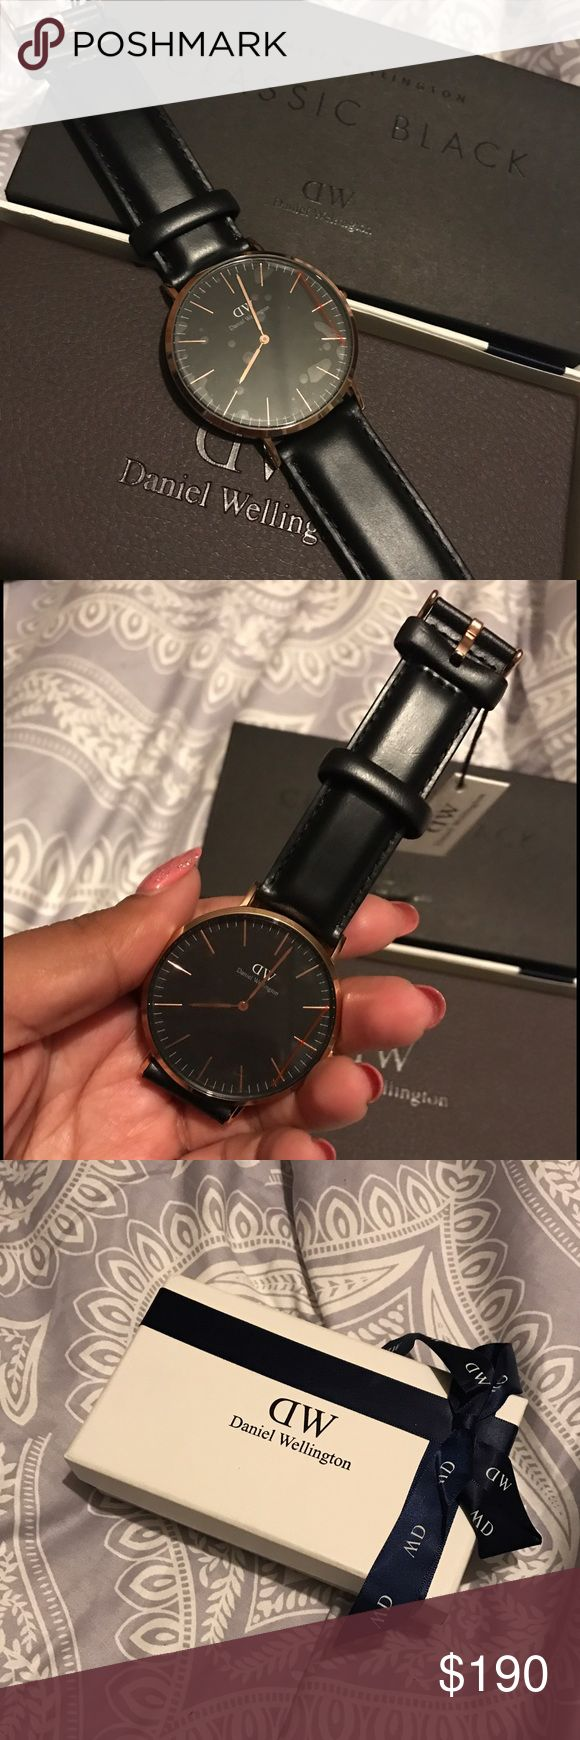 Daniel Wellington Rose Gold Classic Black Watch Daniel Wellington Rose Gold Classic Black Watch. NEVER WORN, brand new with tags. As seen on Kylie Jenner (last pic). Watch Face Size 40mm, rose gold finish, black leather band. I like it, but decided it was too big for my wrist. No trades, please use the offer button if you want to negotiate the price. Thank you ☺️ Daniel Wellington Accessories Watches